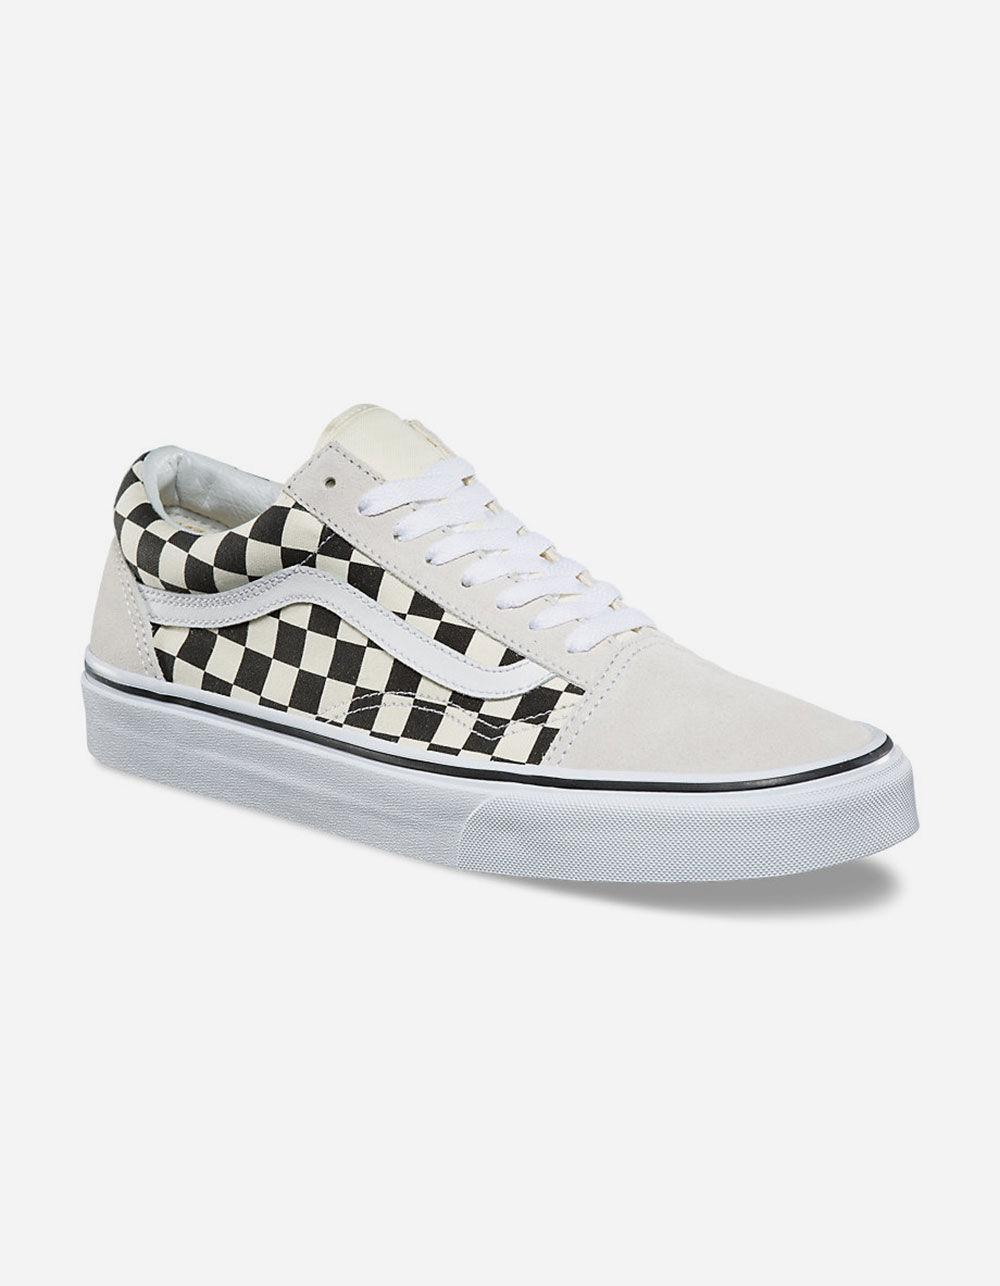 547079b738 Lyst - Vans Checkerboard Old Skool White   Black Shoes in White